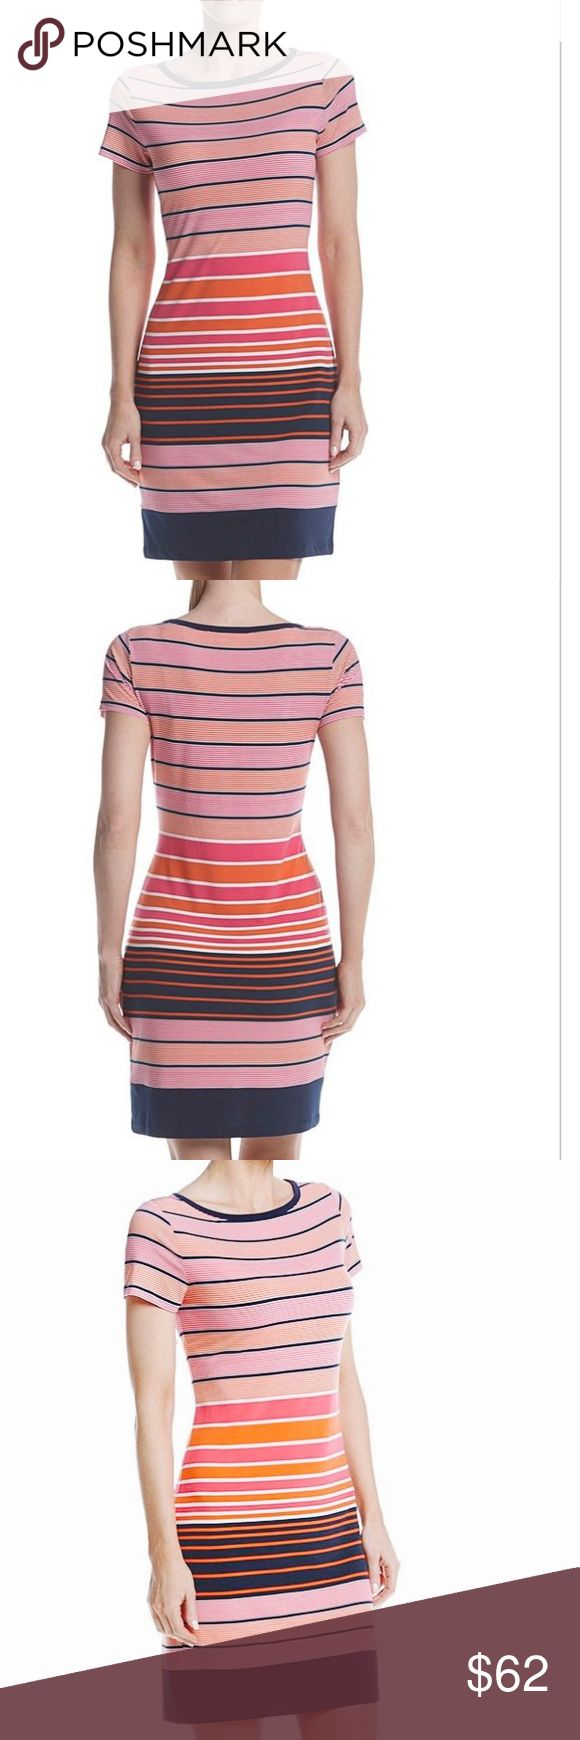 NWT Michael Kors T-Shirt Stand out with bright, fun style in this stripe printed t-shirt dress from MICHAEL Michael Kors. Polyester Crew neck Short sleeves Allover stripe print Above knee length Michael Kors Dresses